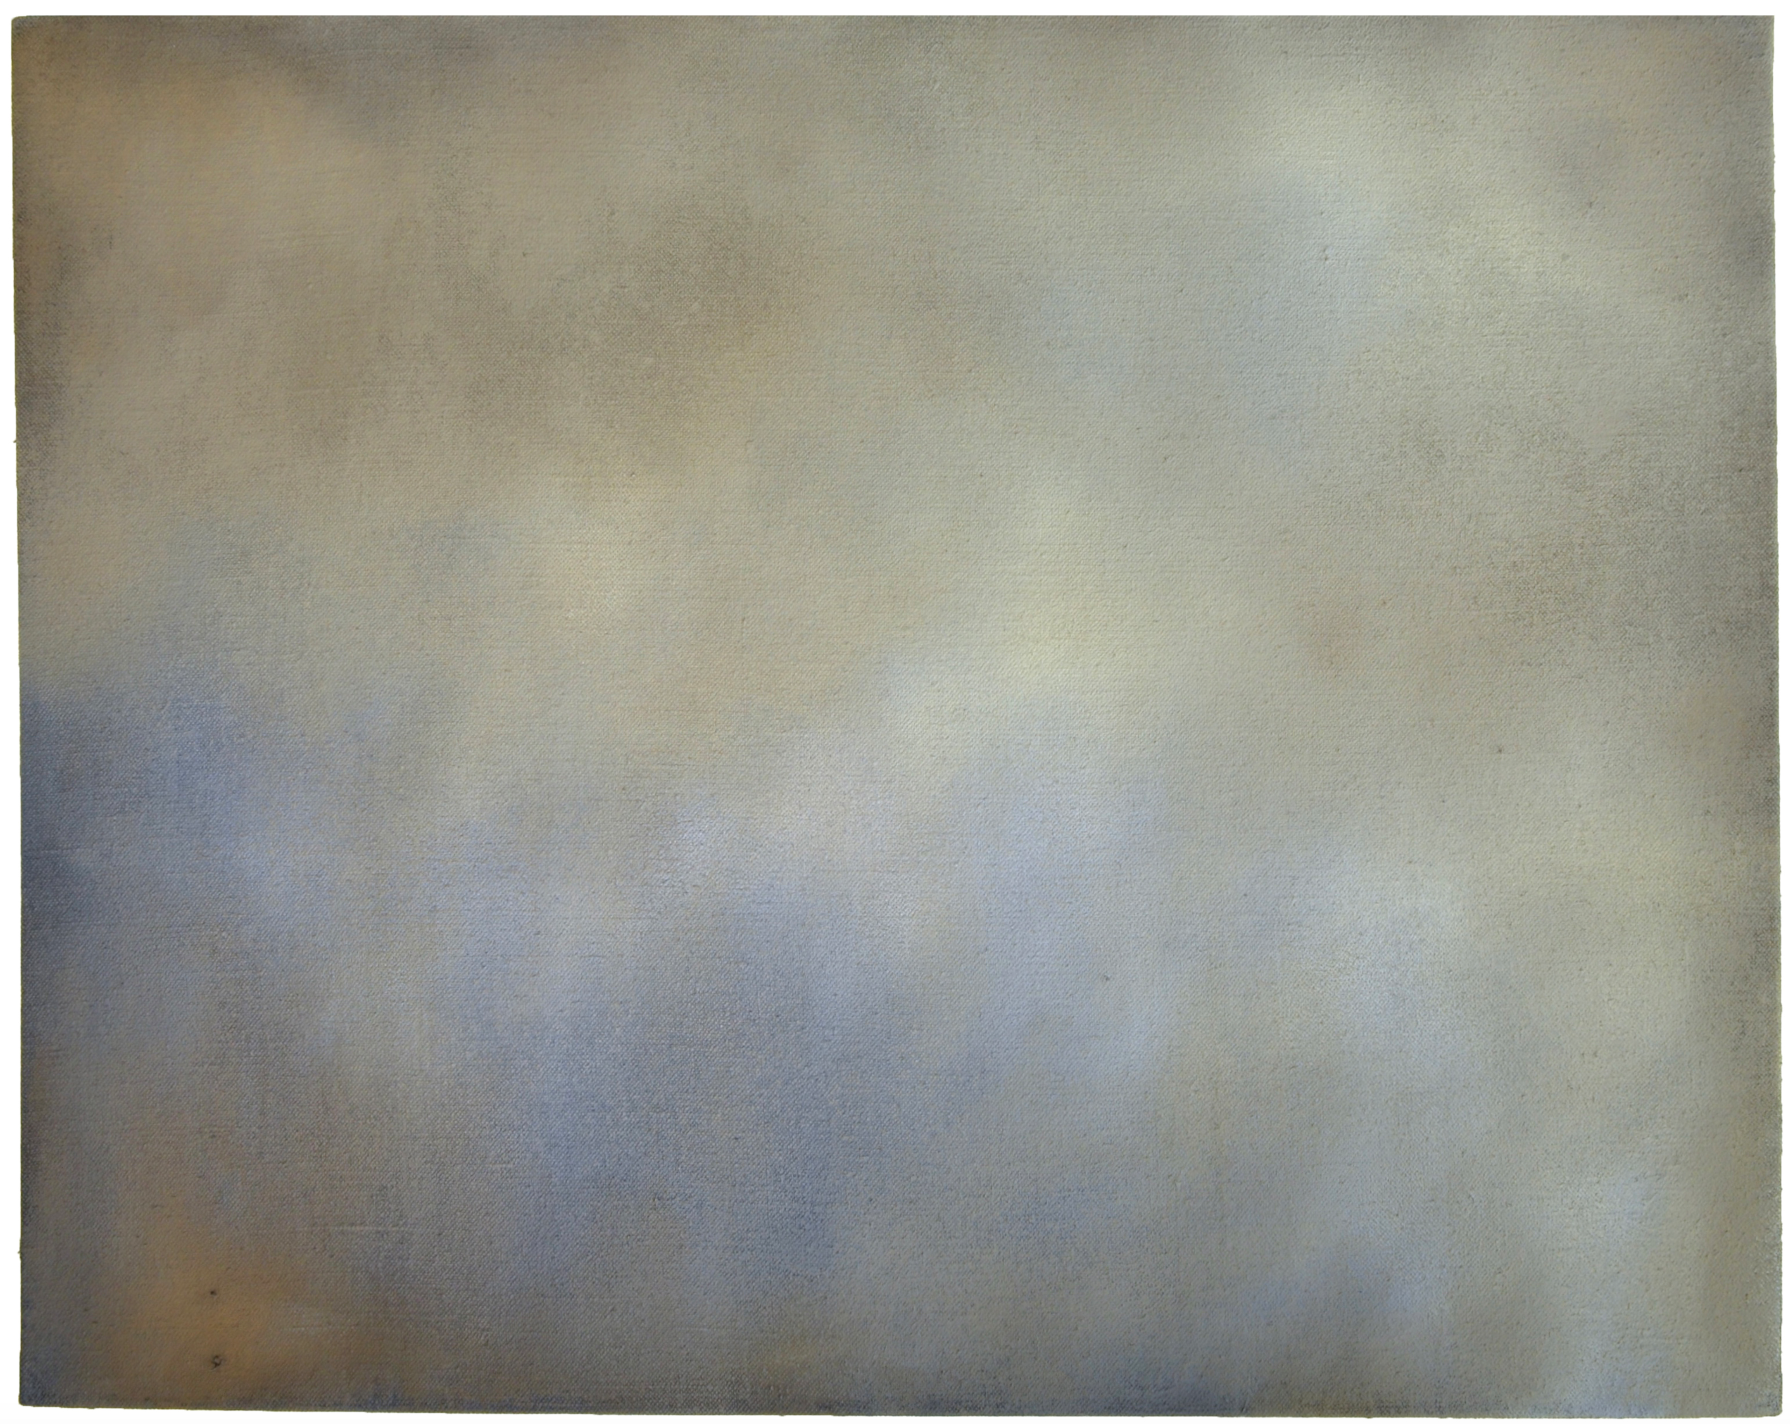 Matthew C. Metzger, Untitled  Oil on Canvas